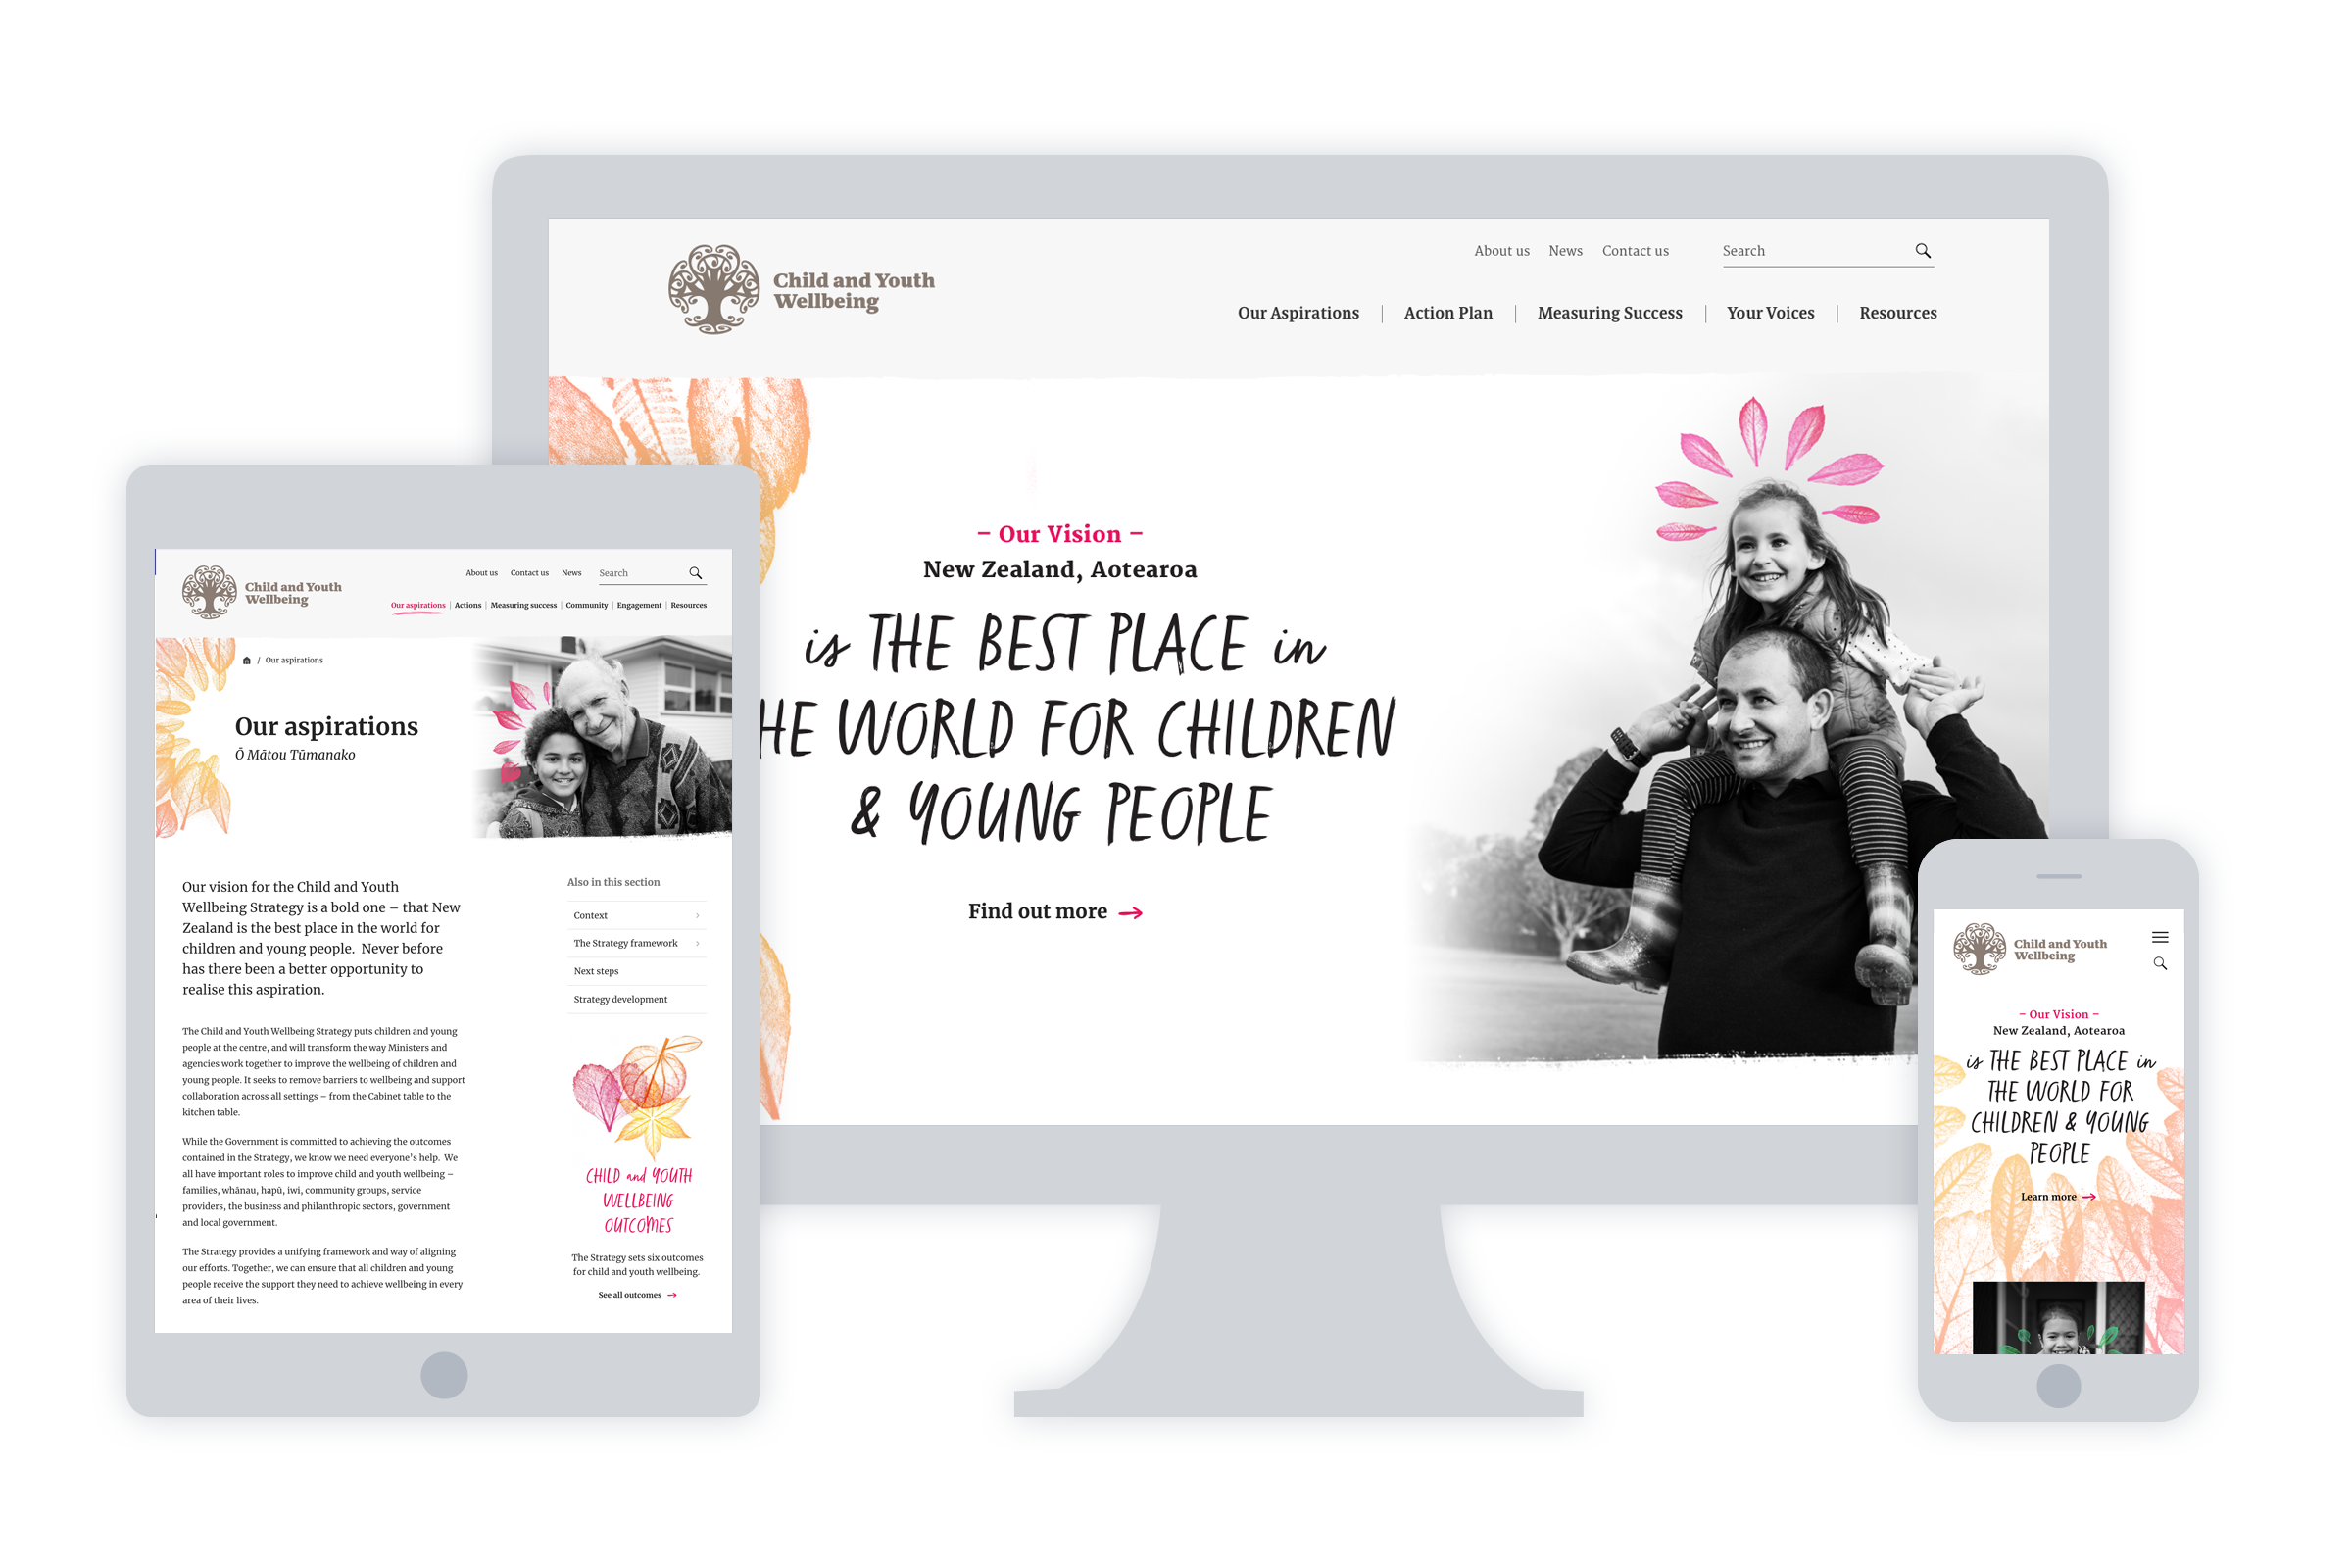 Screenshots of the Child and Youth Wellbeing site